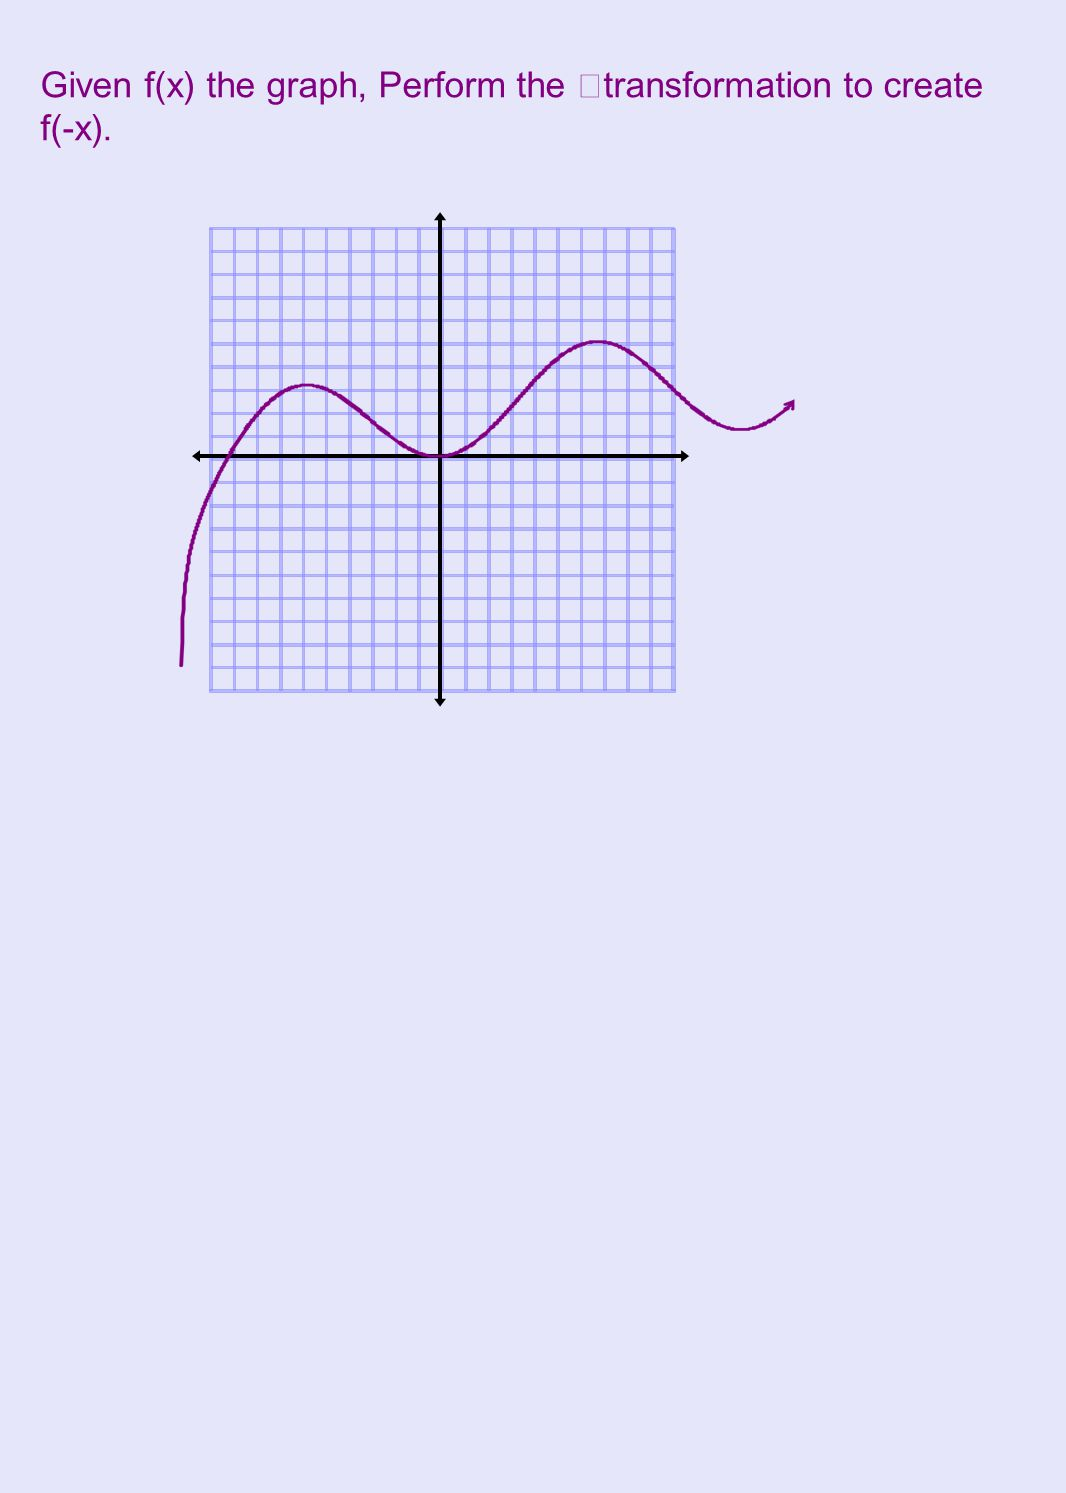 Given f(x) the graph, Perform the transformation to create f(-x).